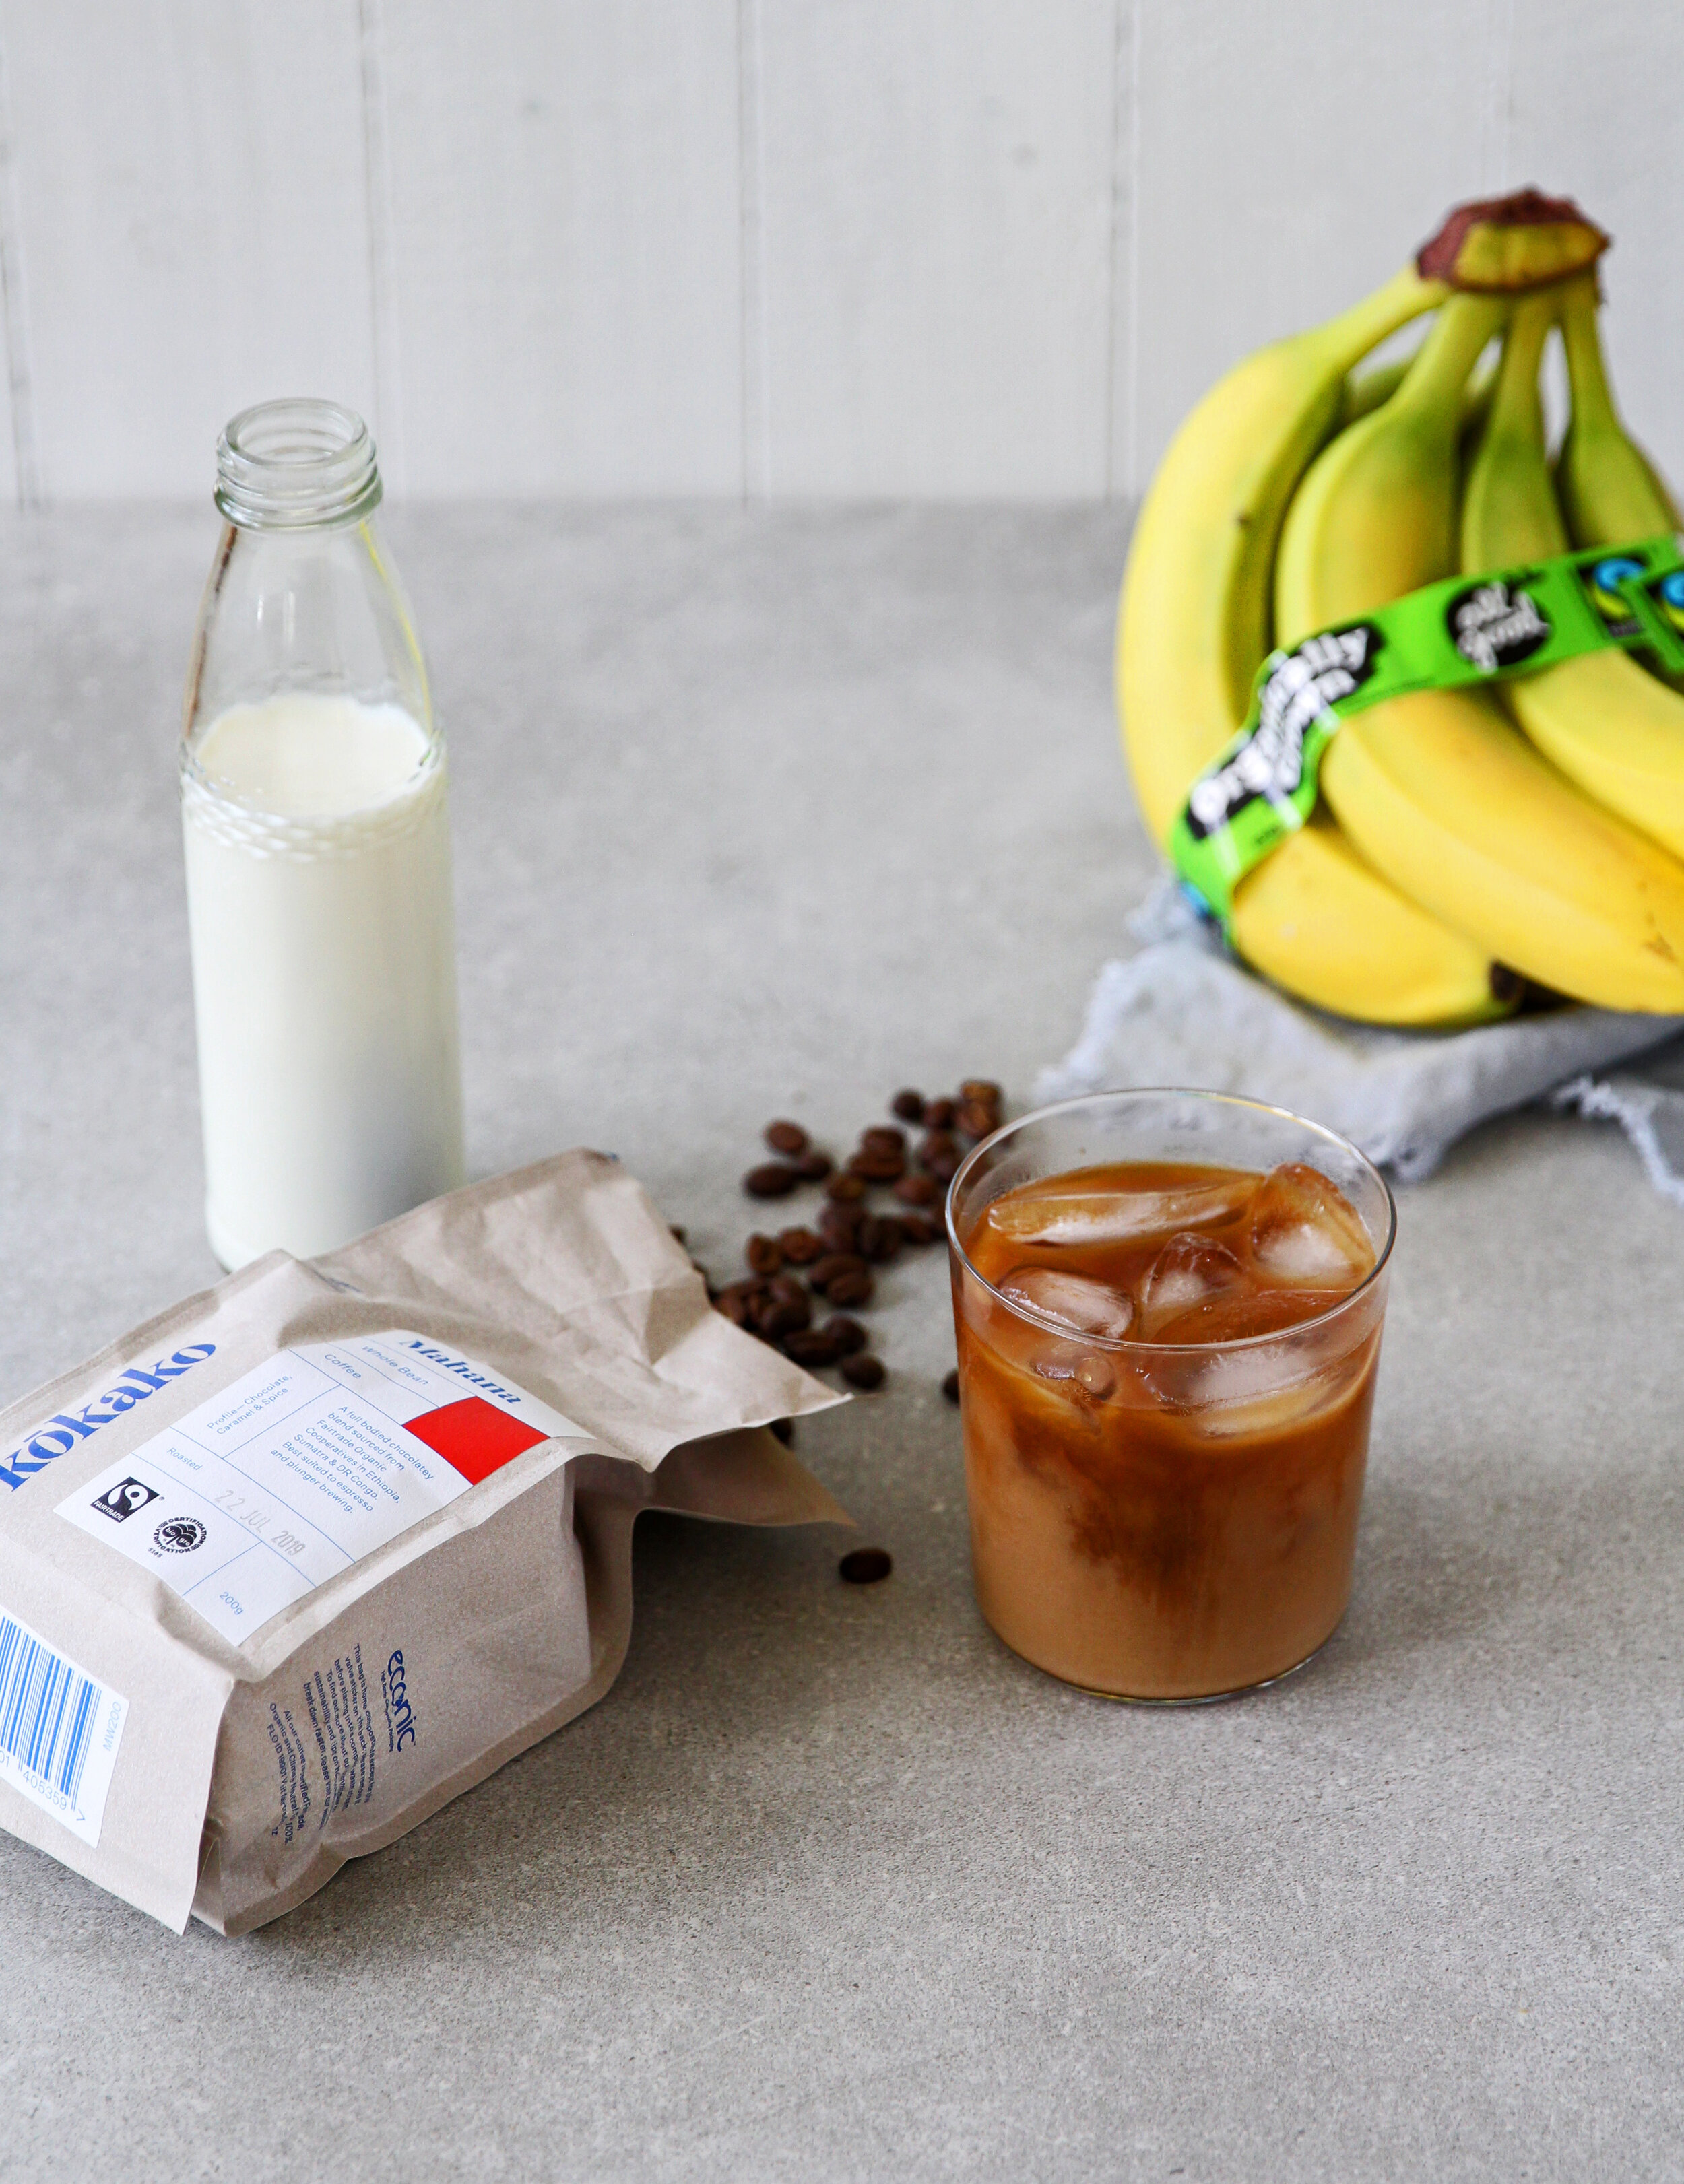 INGREDIENTS - 1 cup milk (you can use a non-dairy milk like almond or coconut)1 ripe All Good banana1 ½ cups cold brew coffee or cooled regular coffeeIce cubes as needed.